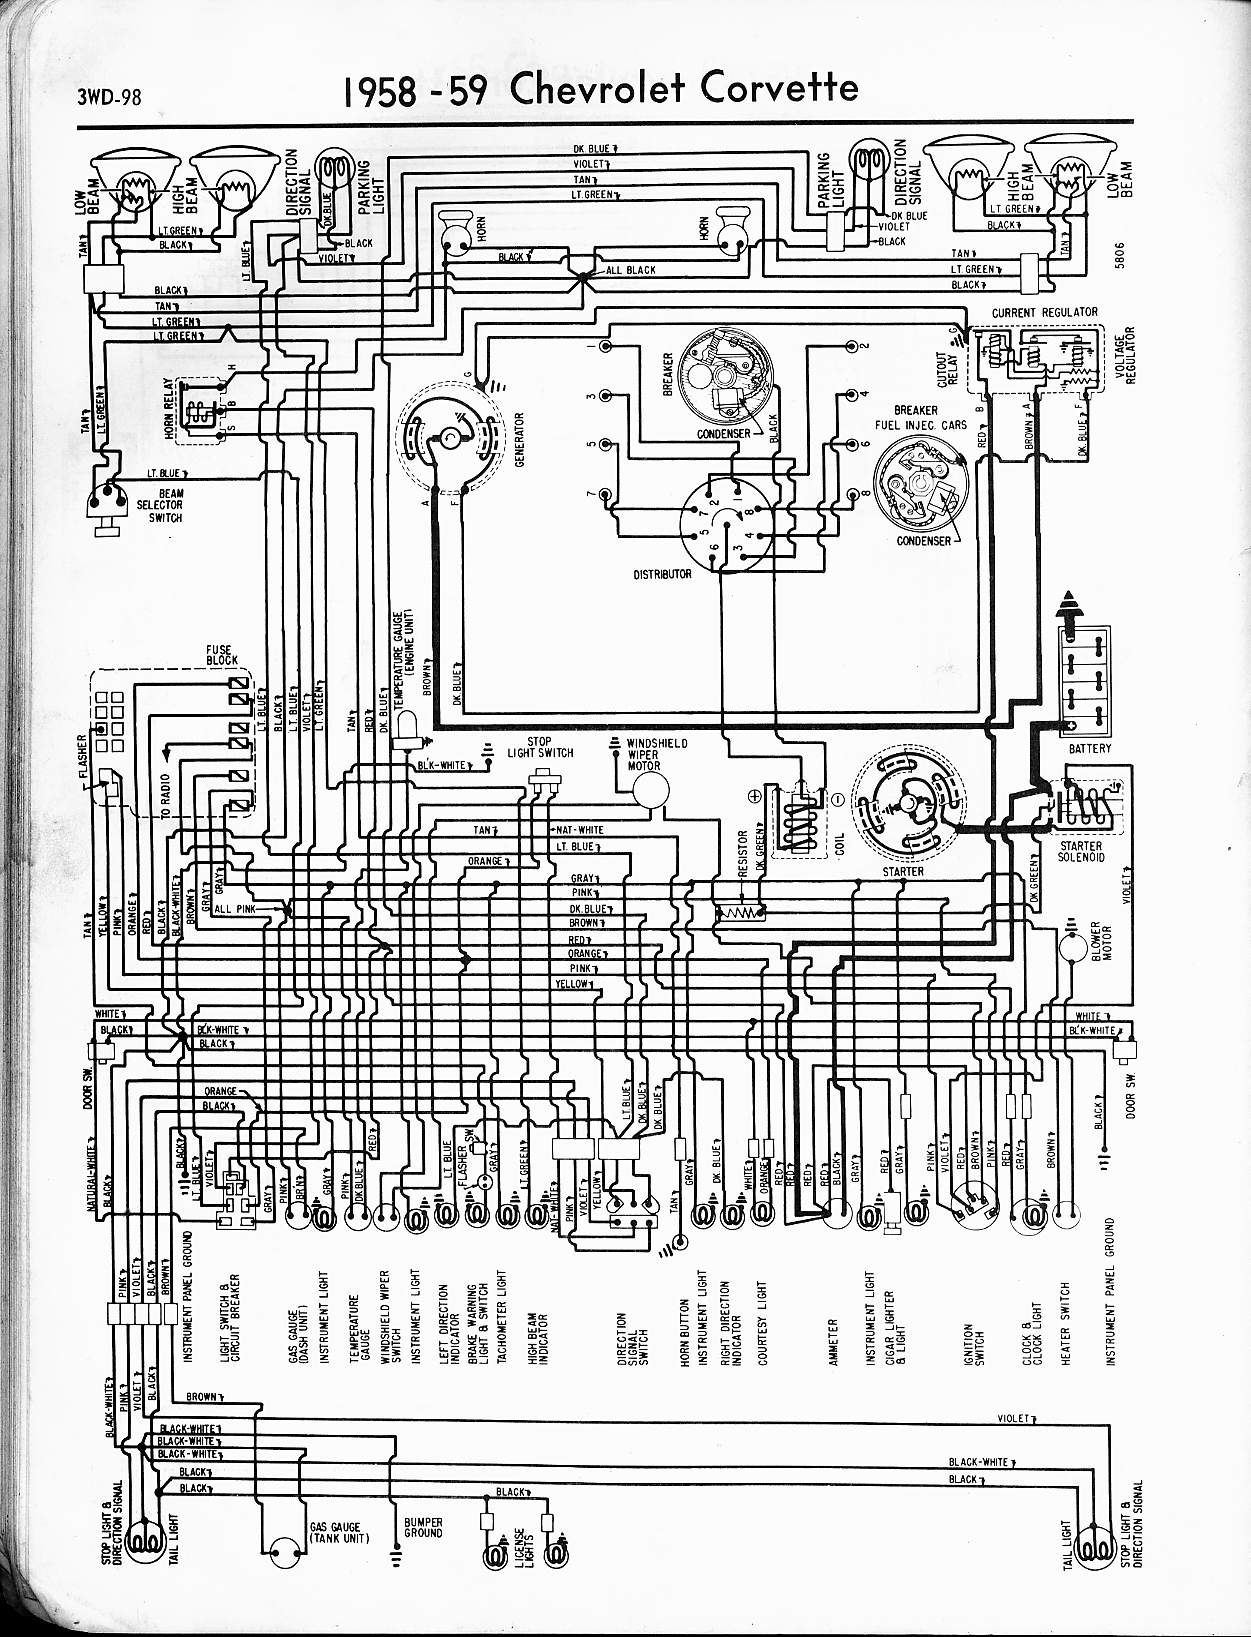 57 65 chevy wiring diagrams rh oldcarmanualproject com 1965 Impala Wiring Diagram 1965 Impala Wiring Diagram